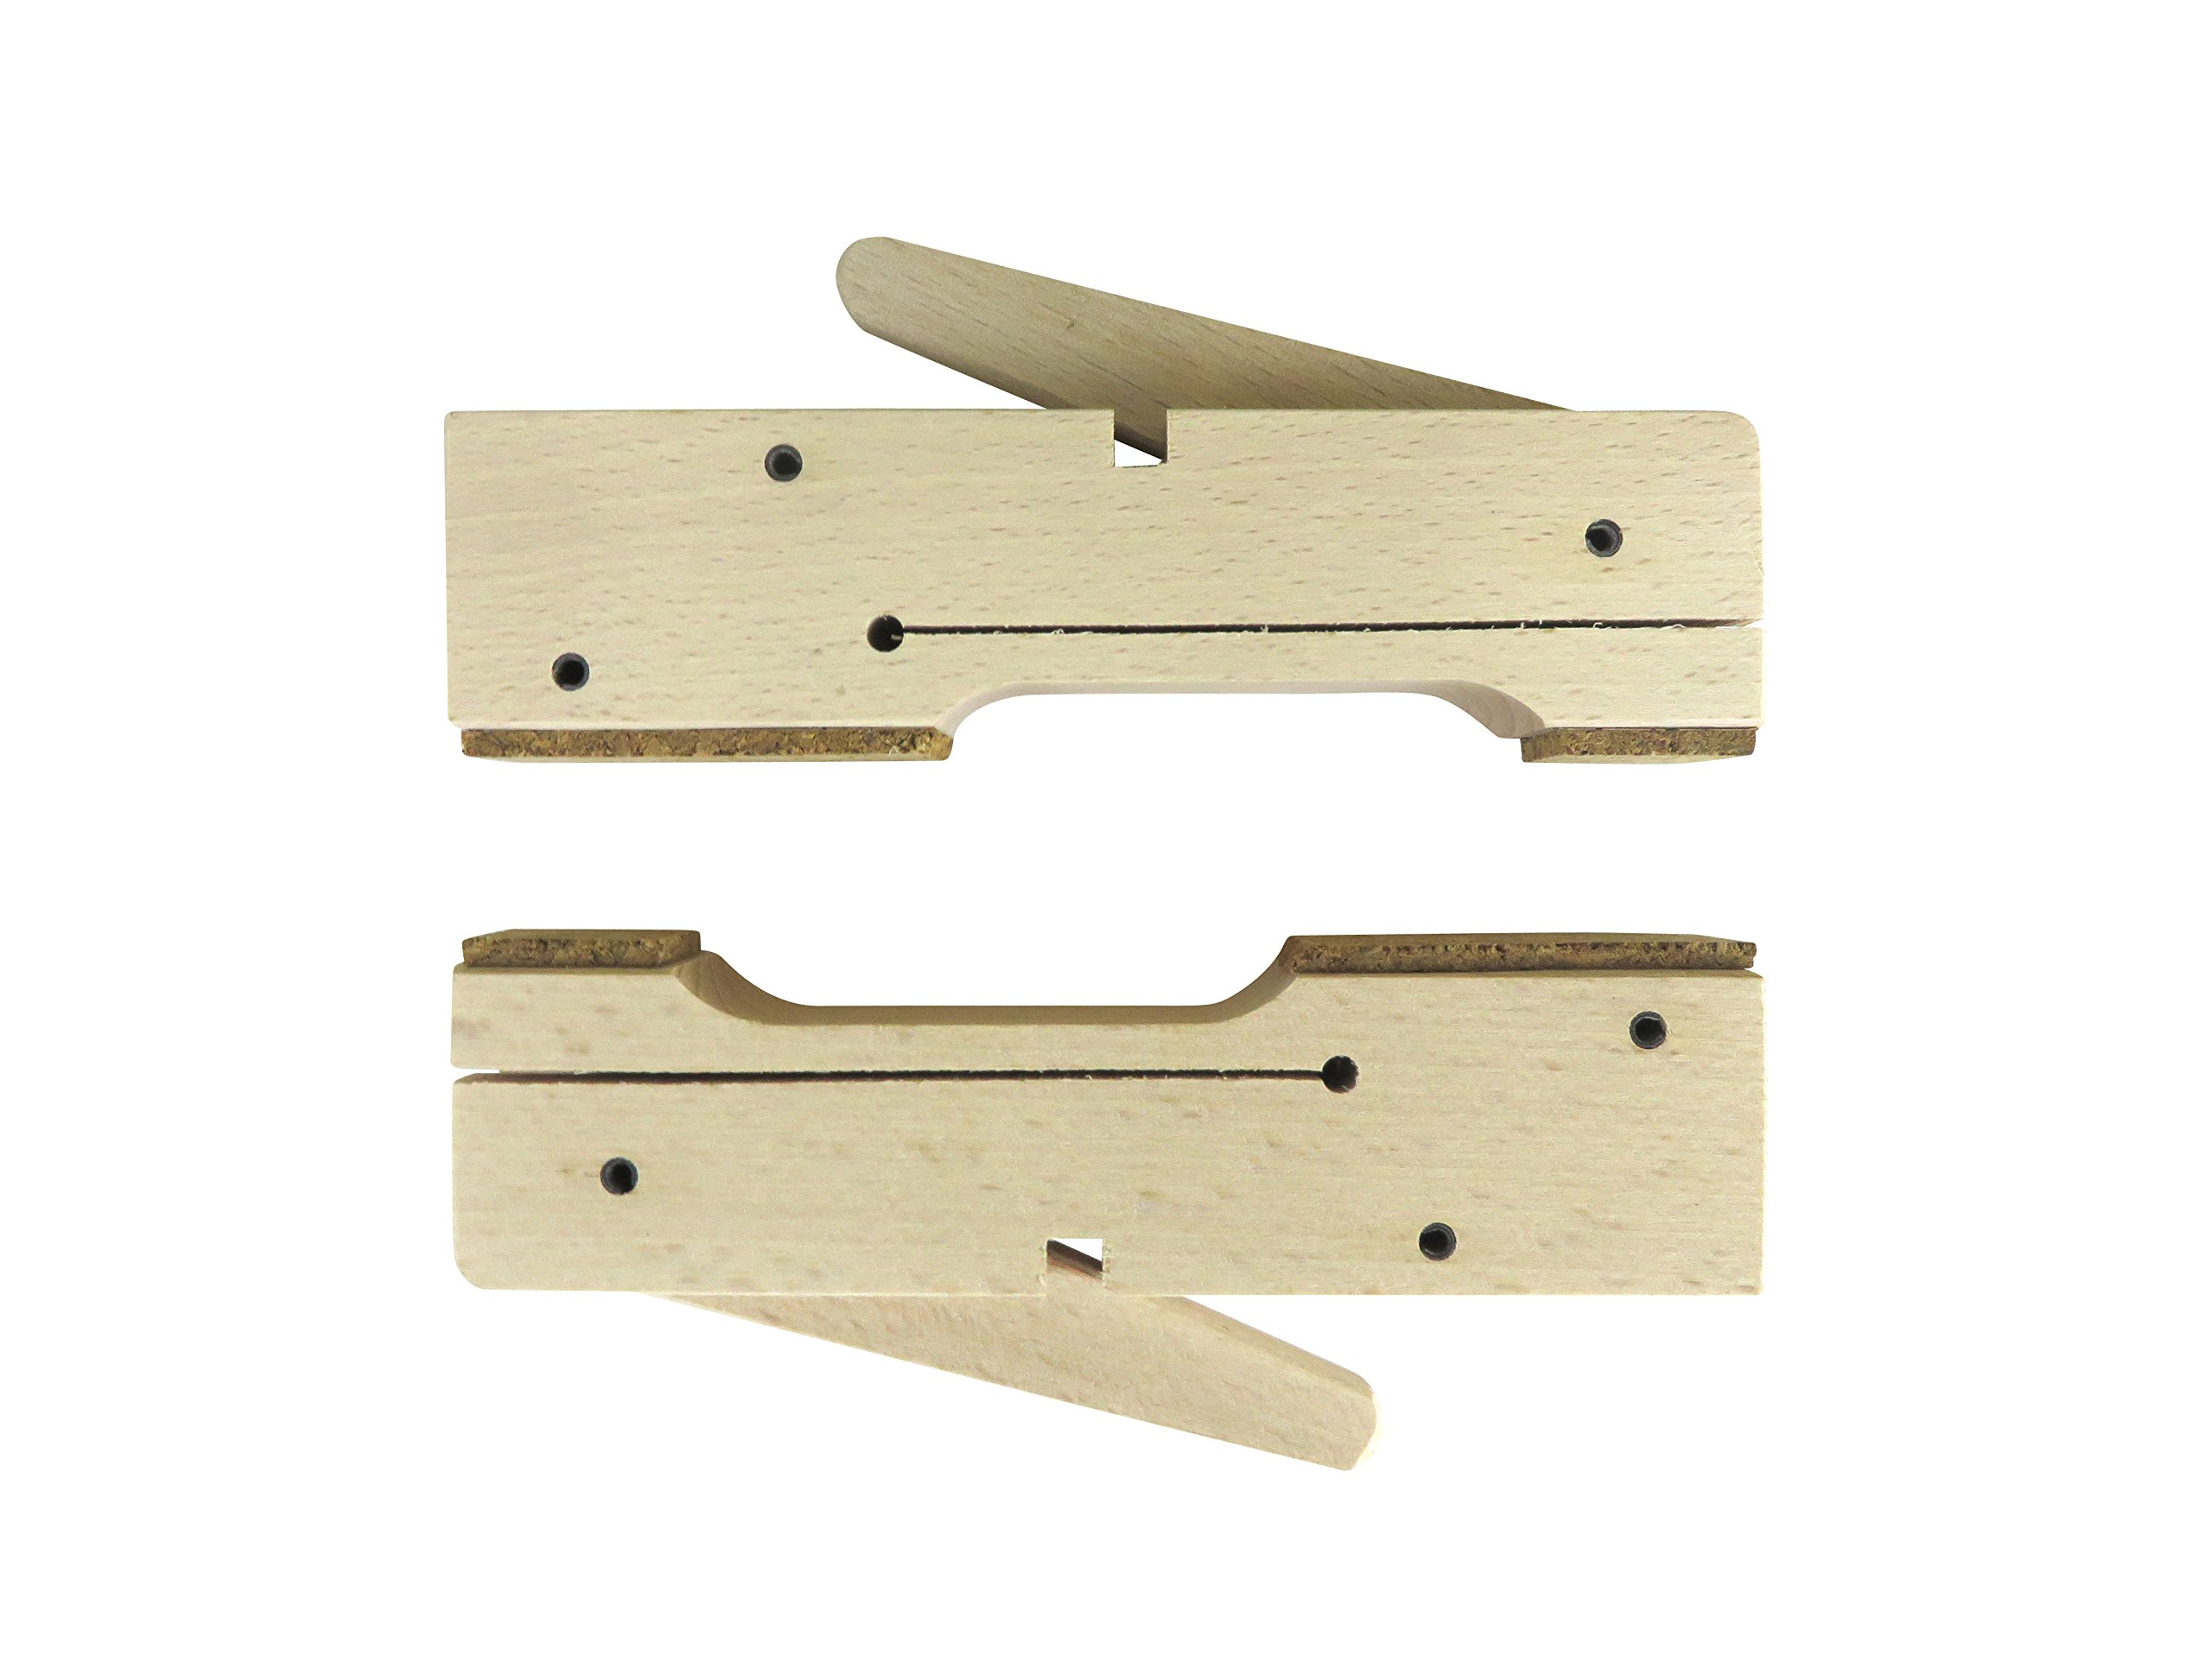 "2 each Pair Taytools 30-1 Wooden Wood Cam Action Edge Clamps 6"" long x 1'' thick x 1-3/8'' wide European Beech"